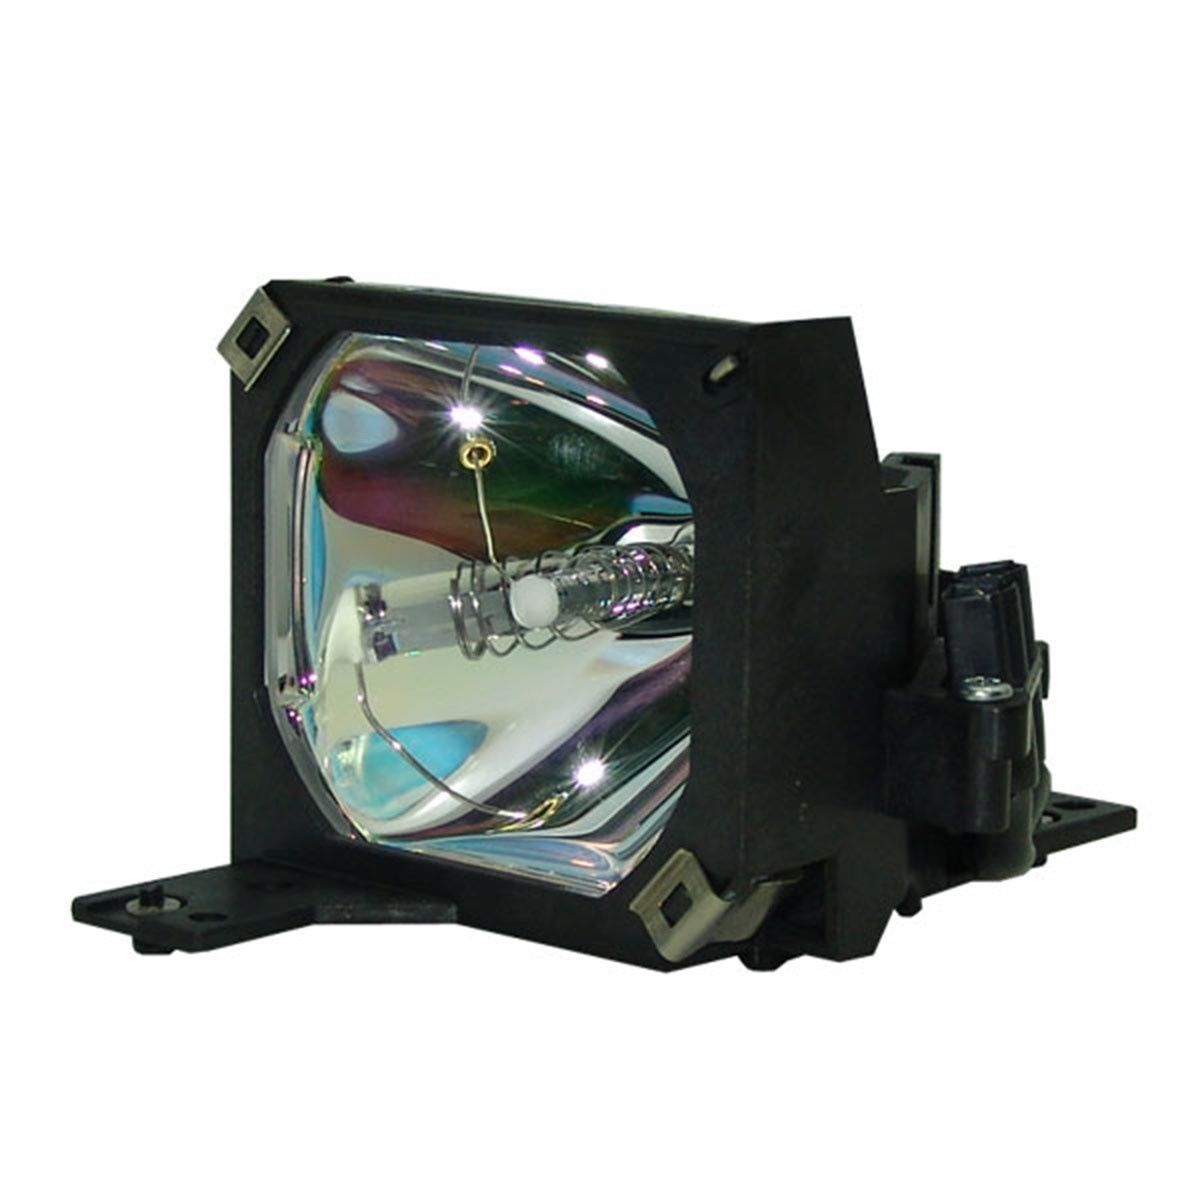 Projector Lamp Bulb ELPLP16 V13H010L16 for Epson EMP-51 EMP-71 EMP-51L with housing osram lamp housing for epson v11h369020 projector dlp lcd bulb